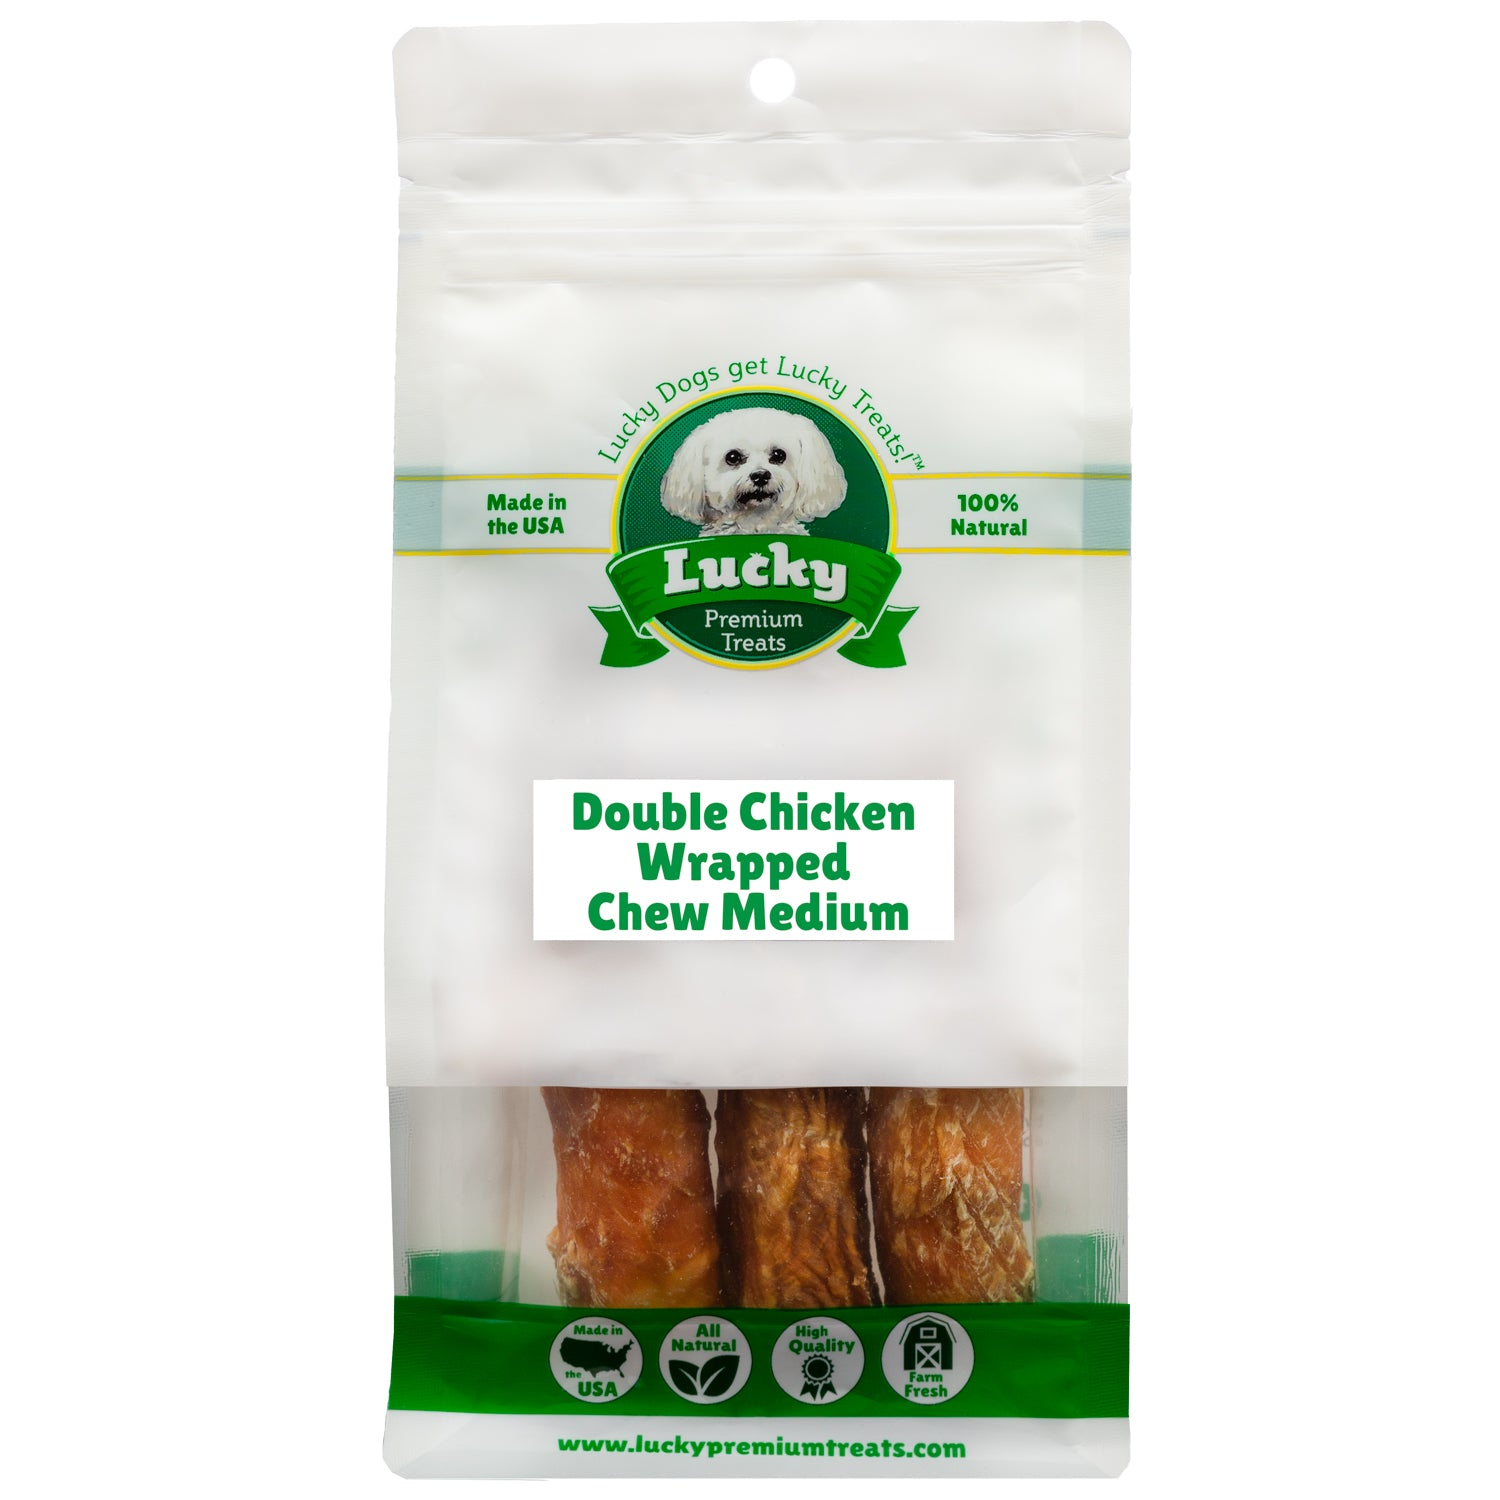 Double Chicken Wrapped Medium Chew